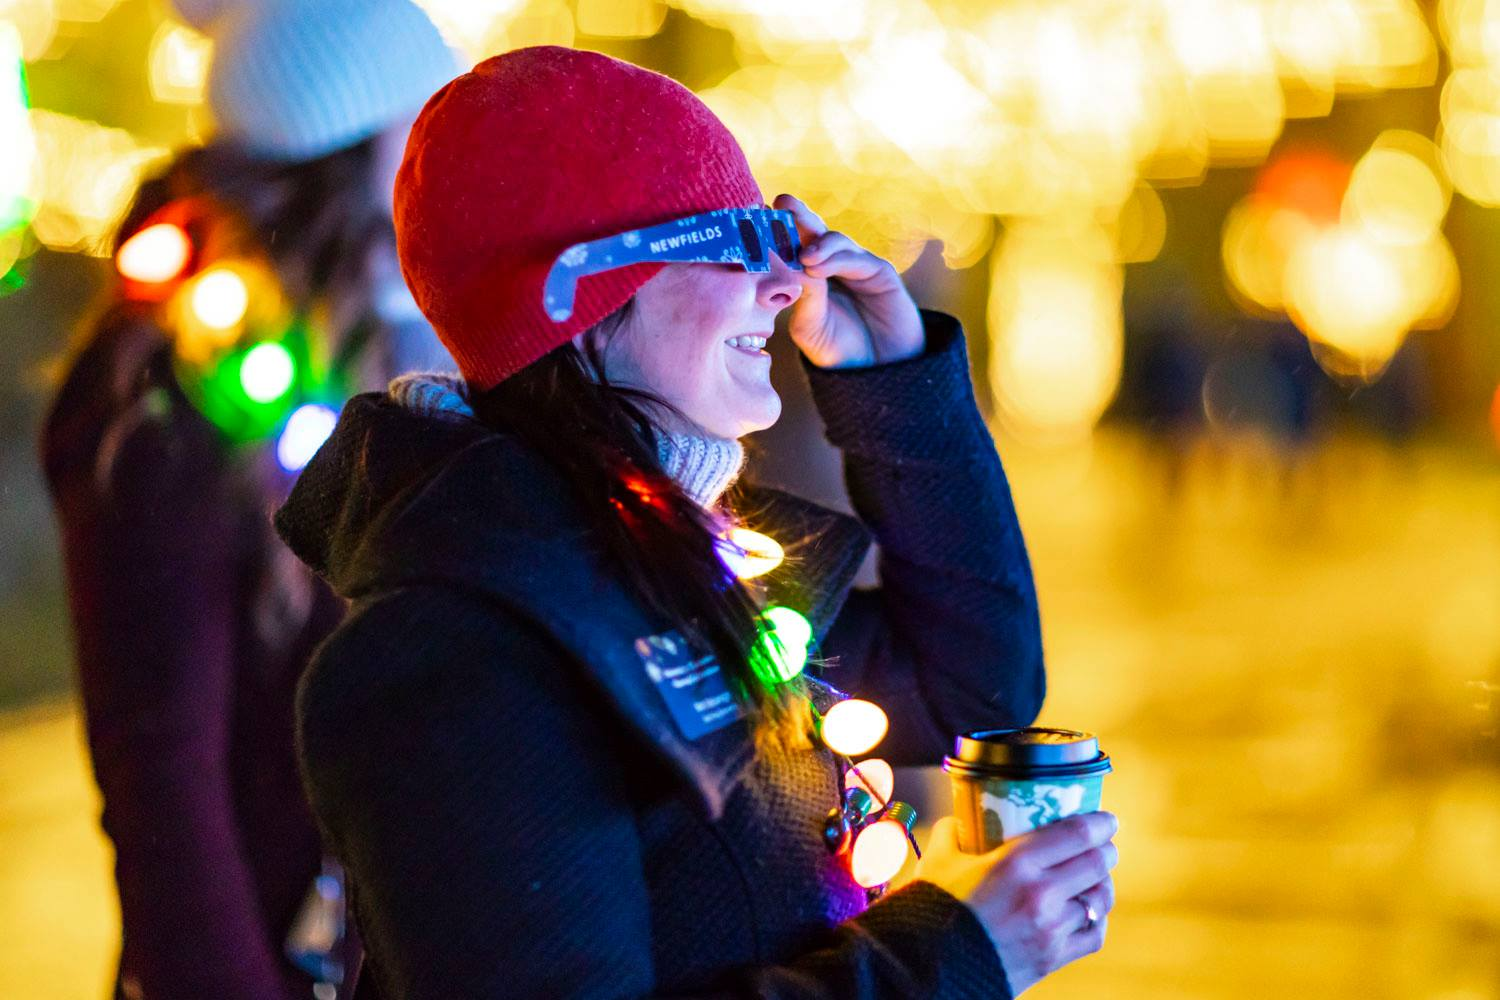 Experience the Winterlights magic at Newfields with Dr. Tavel